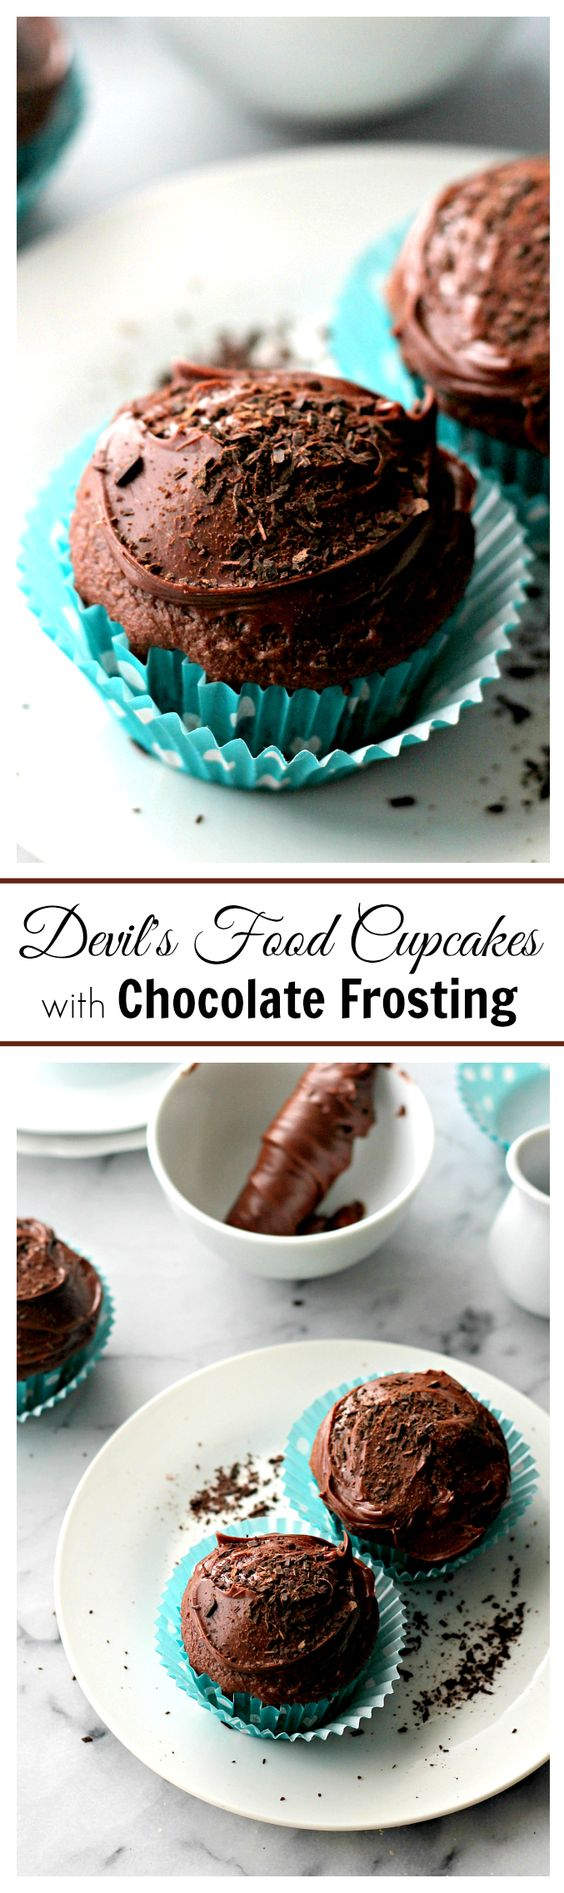 Devil's Food Cupcakes with Chocolate Frosting | www.diethood.com | One ...